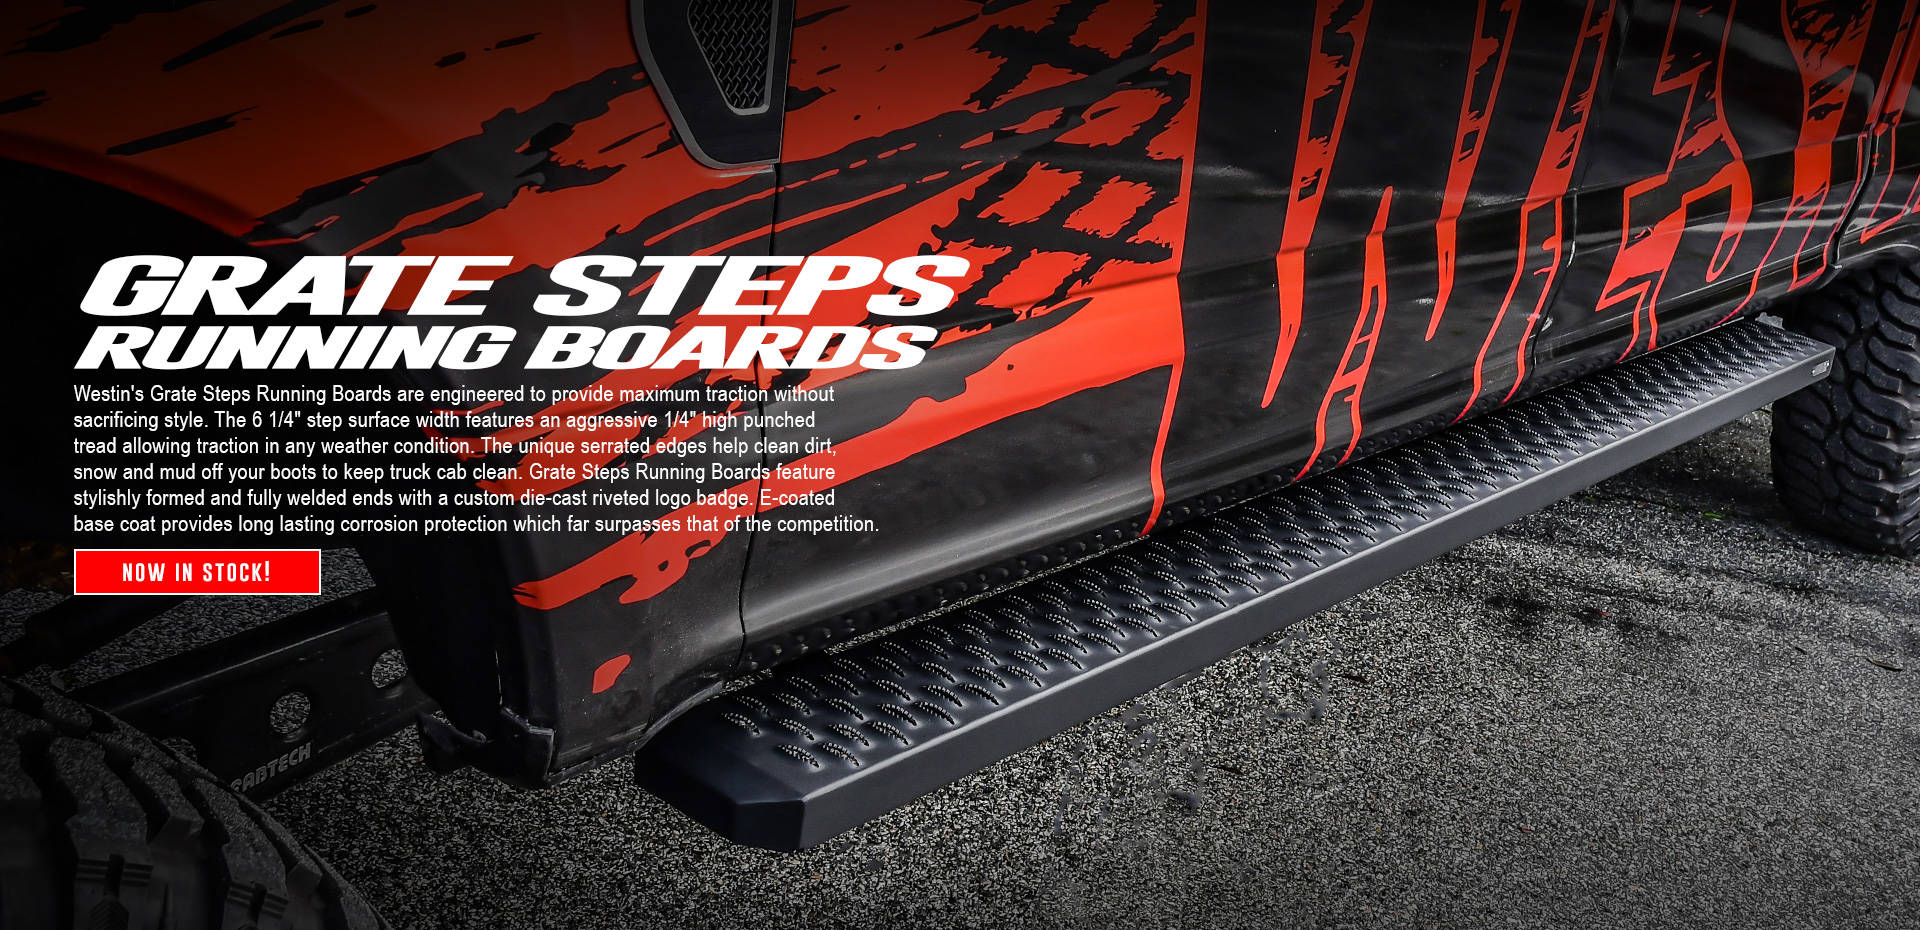 grate-steps-running-boards